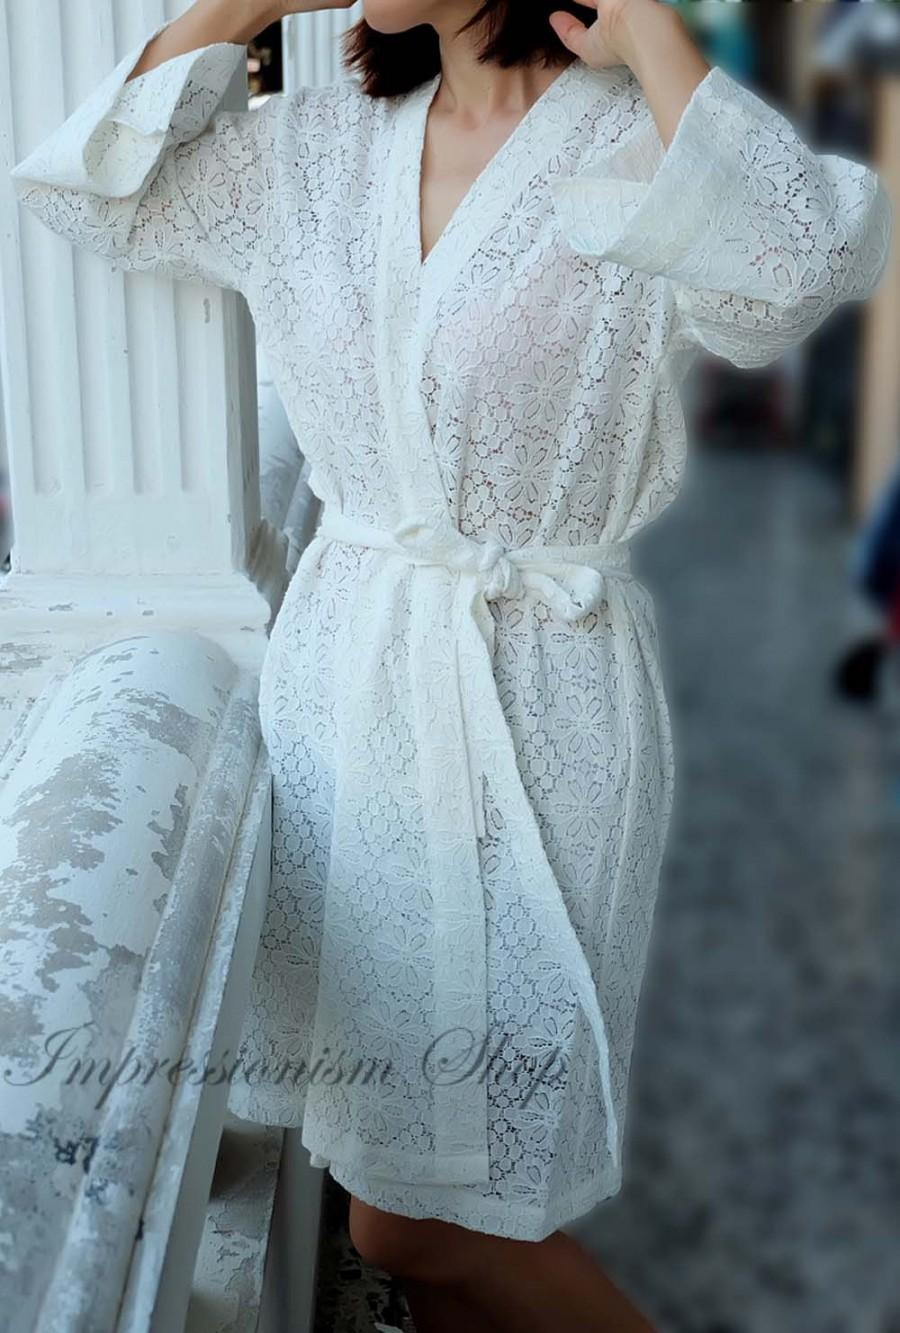 Lace Robe For Bride, Lingerie, Getting Ready, Bridal Gift ...